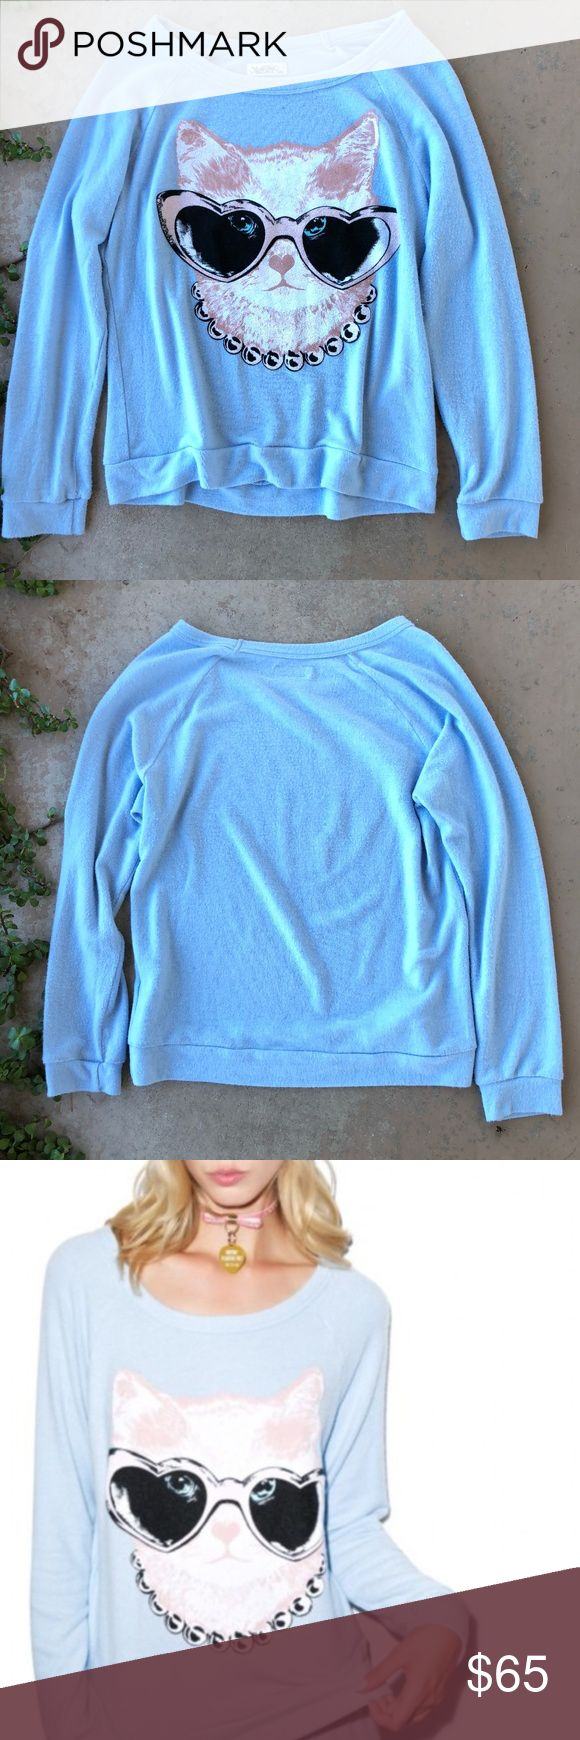 Lauren Moshi Brenna Fancy Cat Pullover Sweater Super soft baby blue pullover jumper/sweater with a fancy cat graphic. Factory pre-pilled and so cozy! Size small. In excellent condition, no flaws. Lauren Moshi Sweaters Crew & Scoop Necks